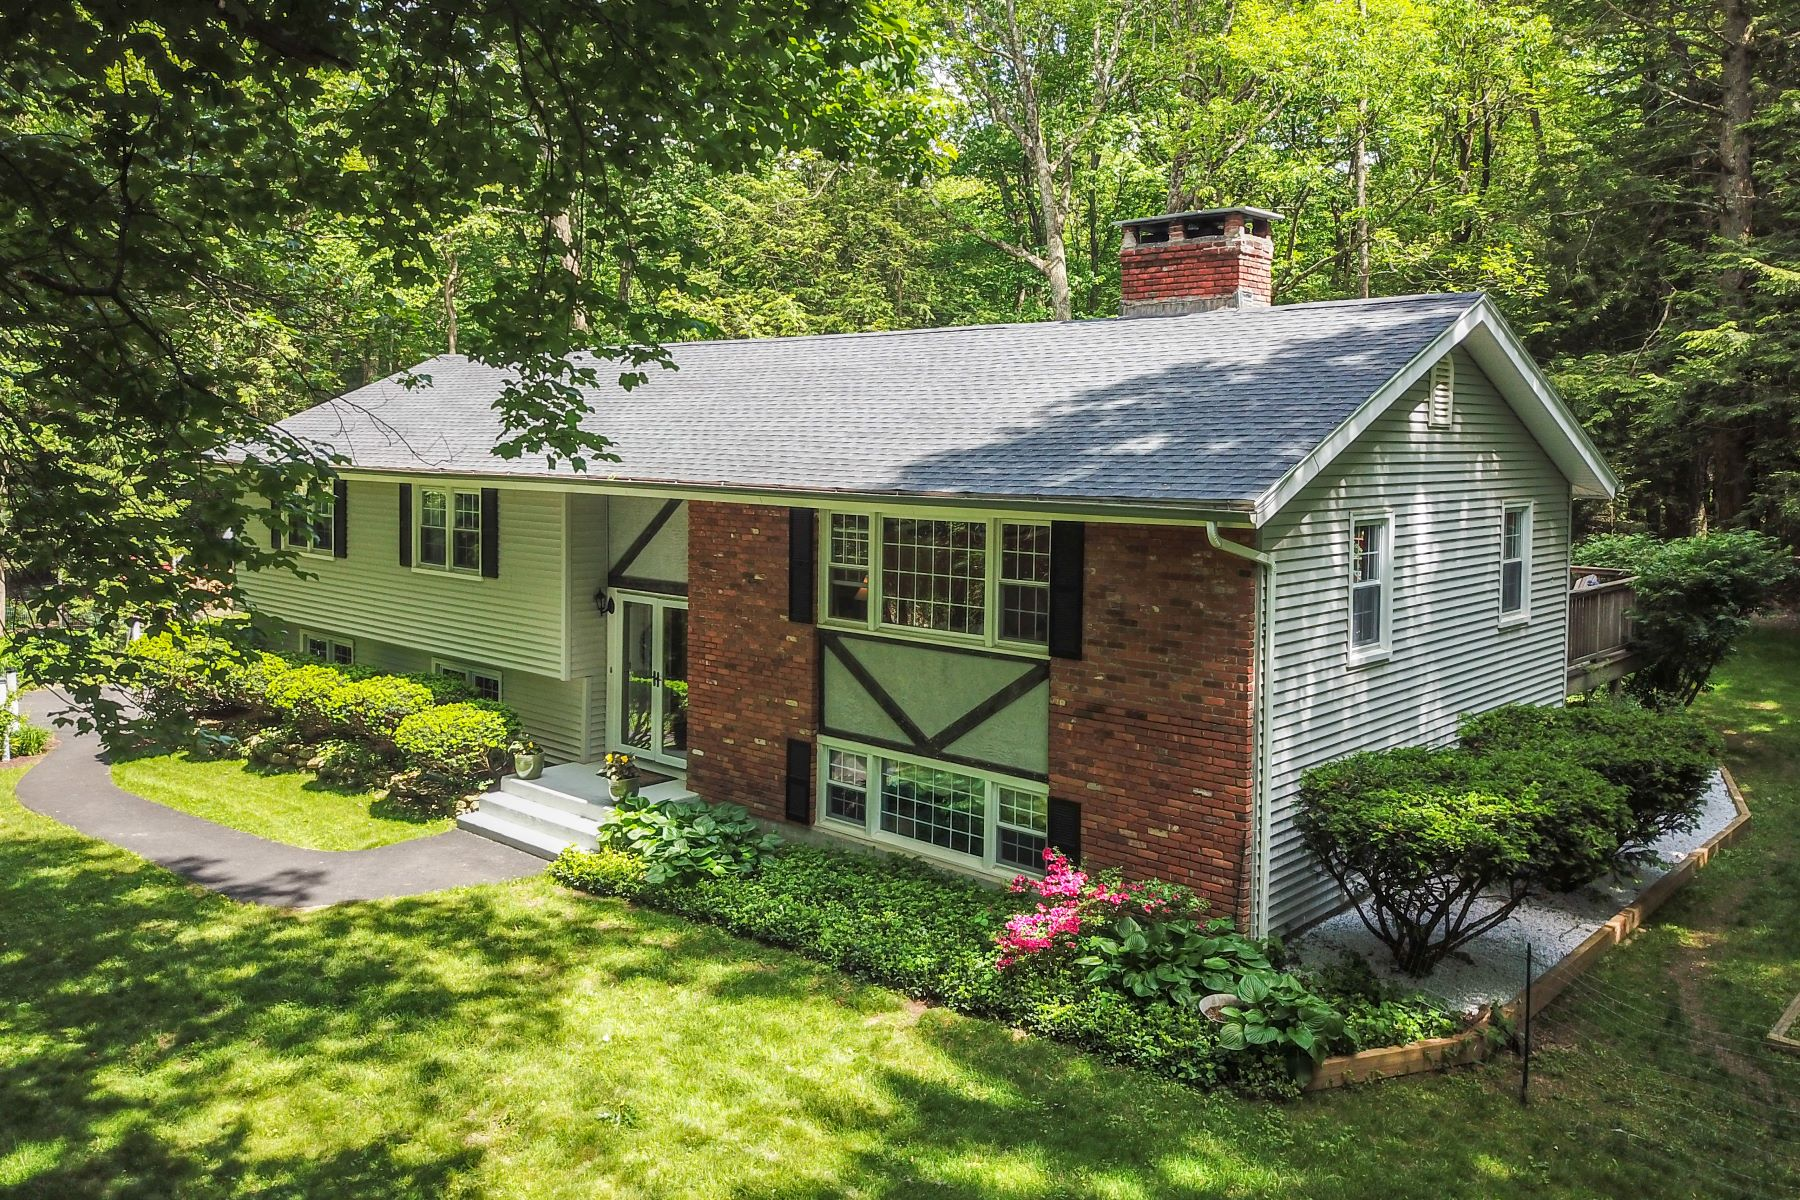 single family homes voor Verkoop op 27 Berkshire Drive New Hartford, Connecticut 06057 Verenigde Staten